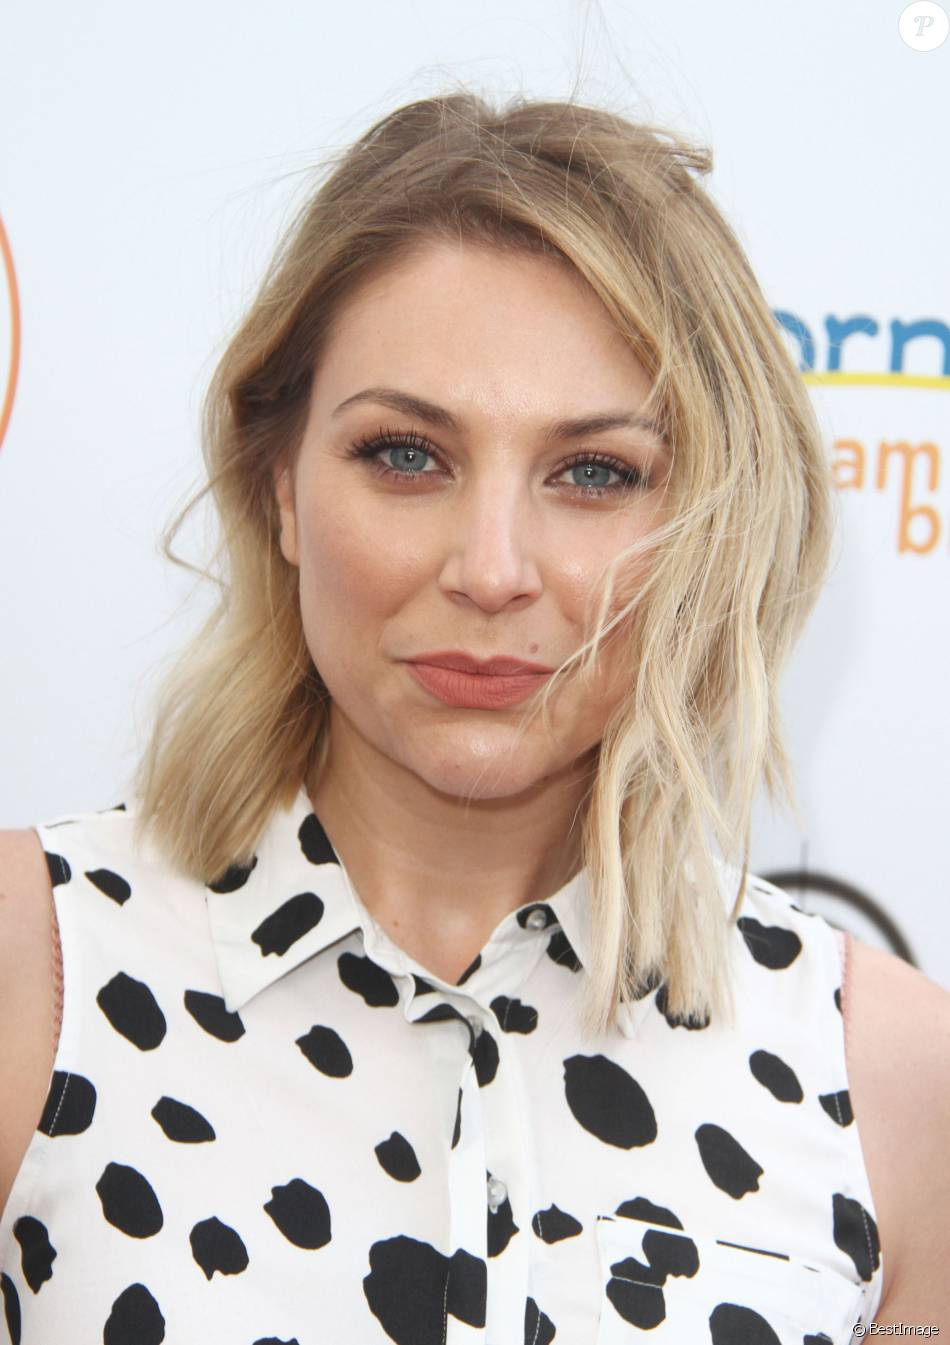 kate jenkinson birthdatekate jenkinson instagram, kate jenkinson married, kate jenkinson actress, kate jenkinson snapchat, kate jenkinson twitter, kate jenkinson bio, kate jenkinson imdb, kate jenkinson address, kate jenkinson born, kate jenkinson age, kate jenkinson biography, kate jenkinson feet, kate jenkinson hot, kate jenkinson rmit, kate jenkinson birthday, kate jenkinson time of our lives, kate jenkinson wentworth, kate jenkinson date of birth, kate jenkinson boyfriend, kate jenkinson birthdate